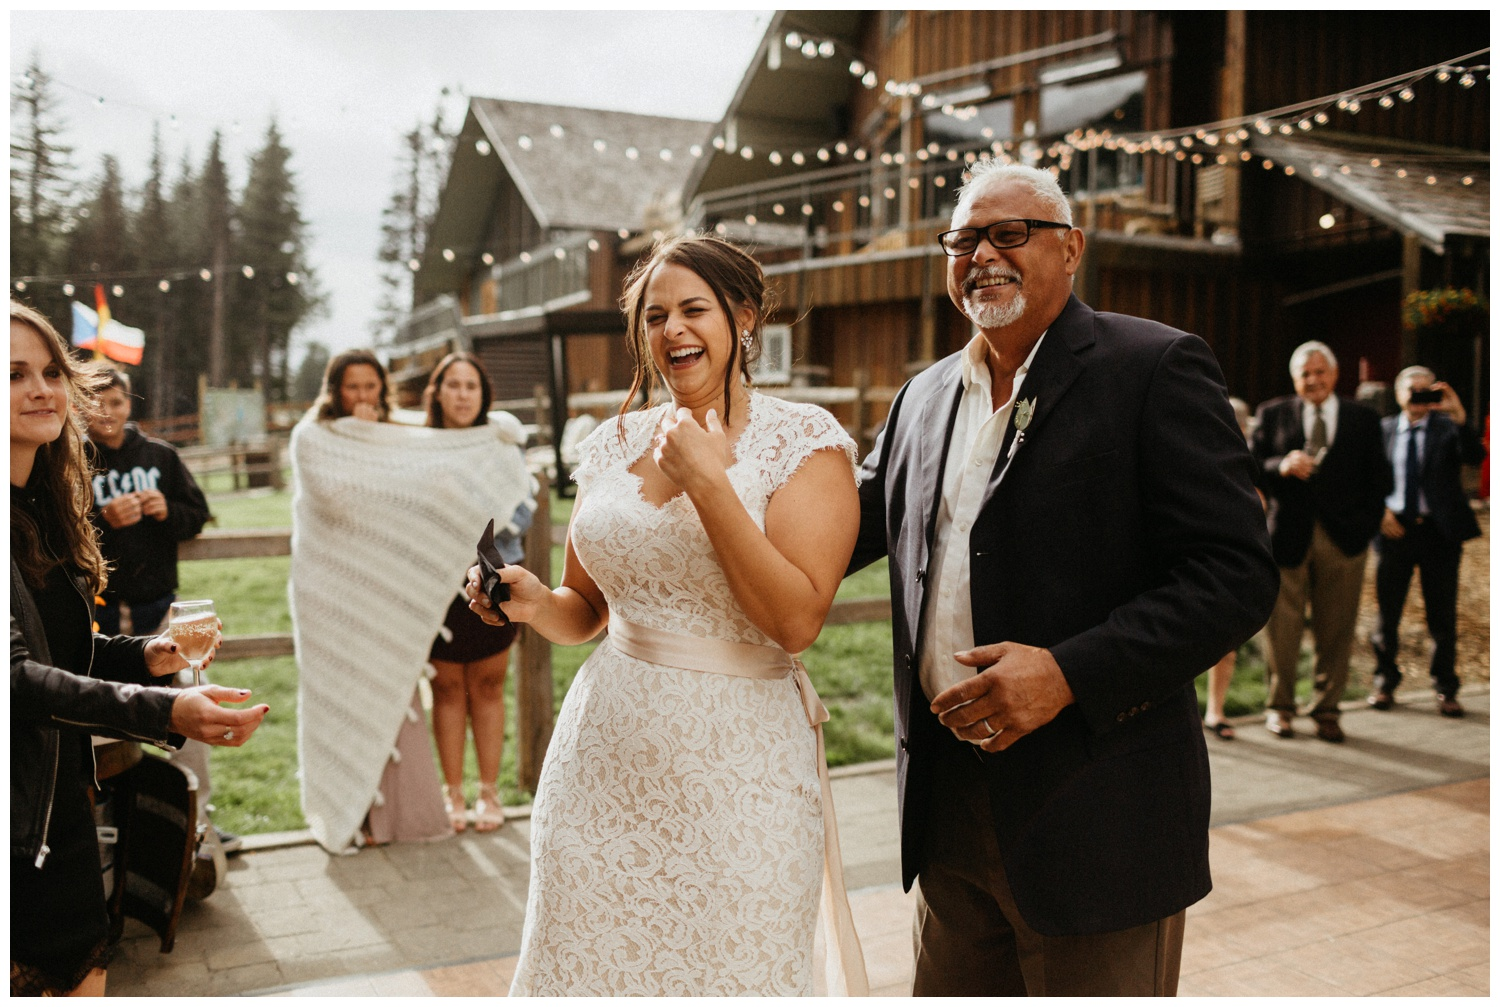 jasmine-j-photography-mt-hood-skibowl-wedding_0104.jpg